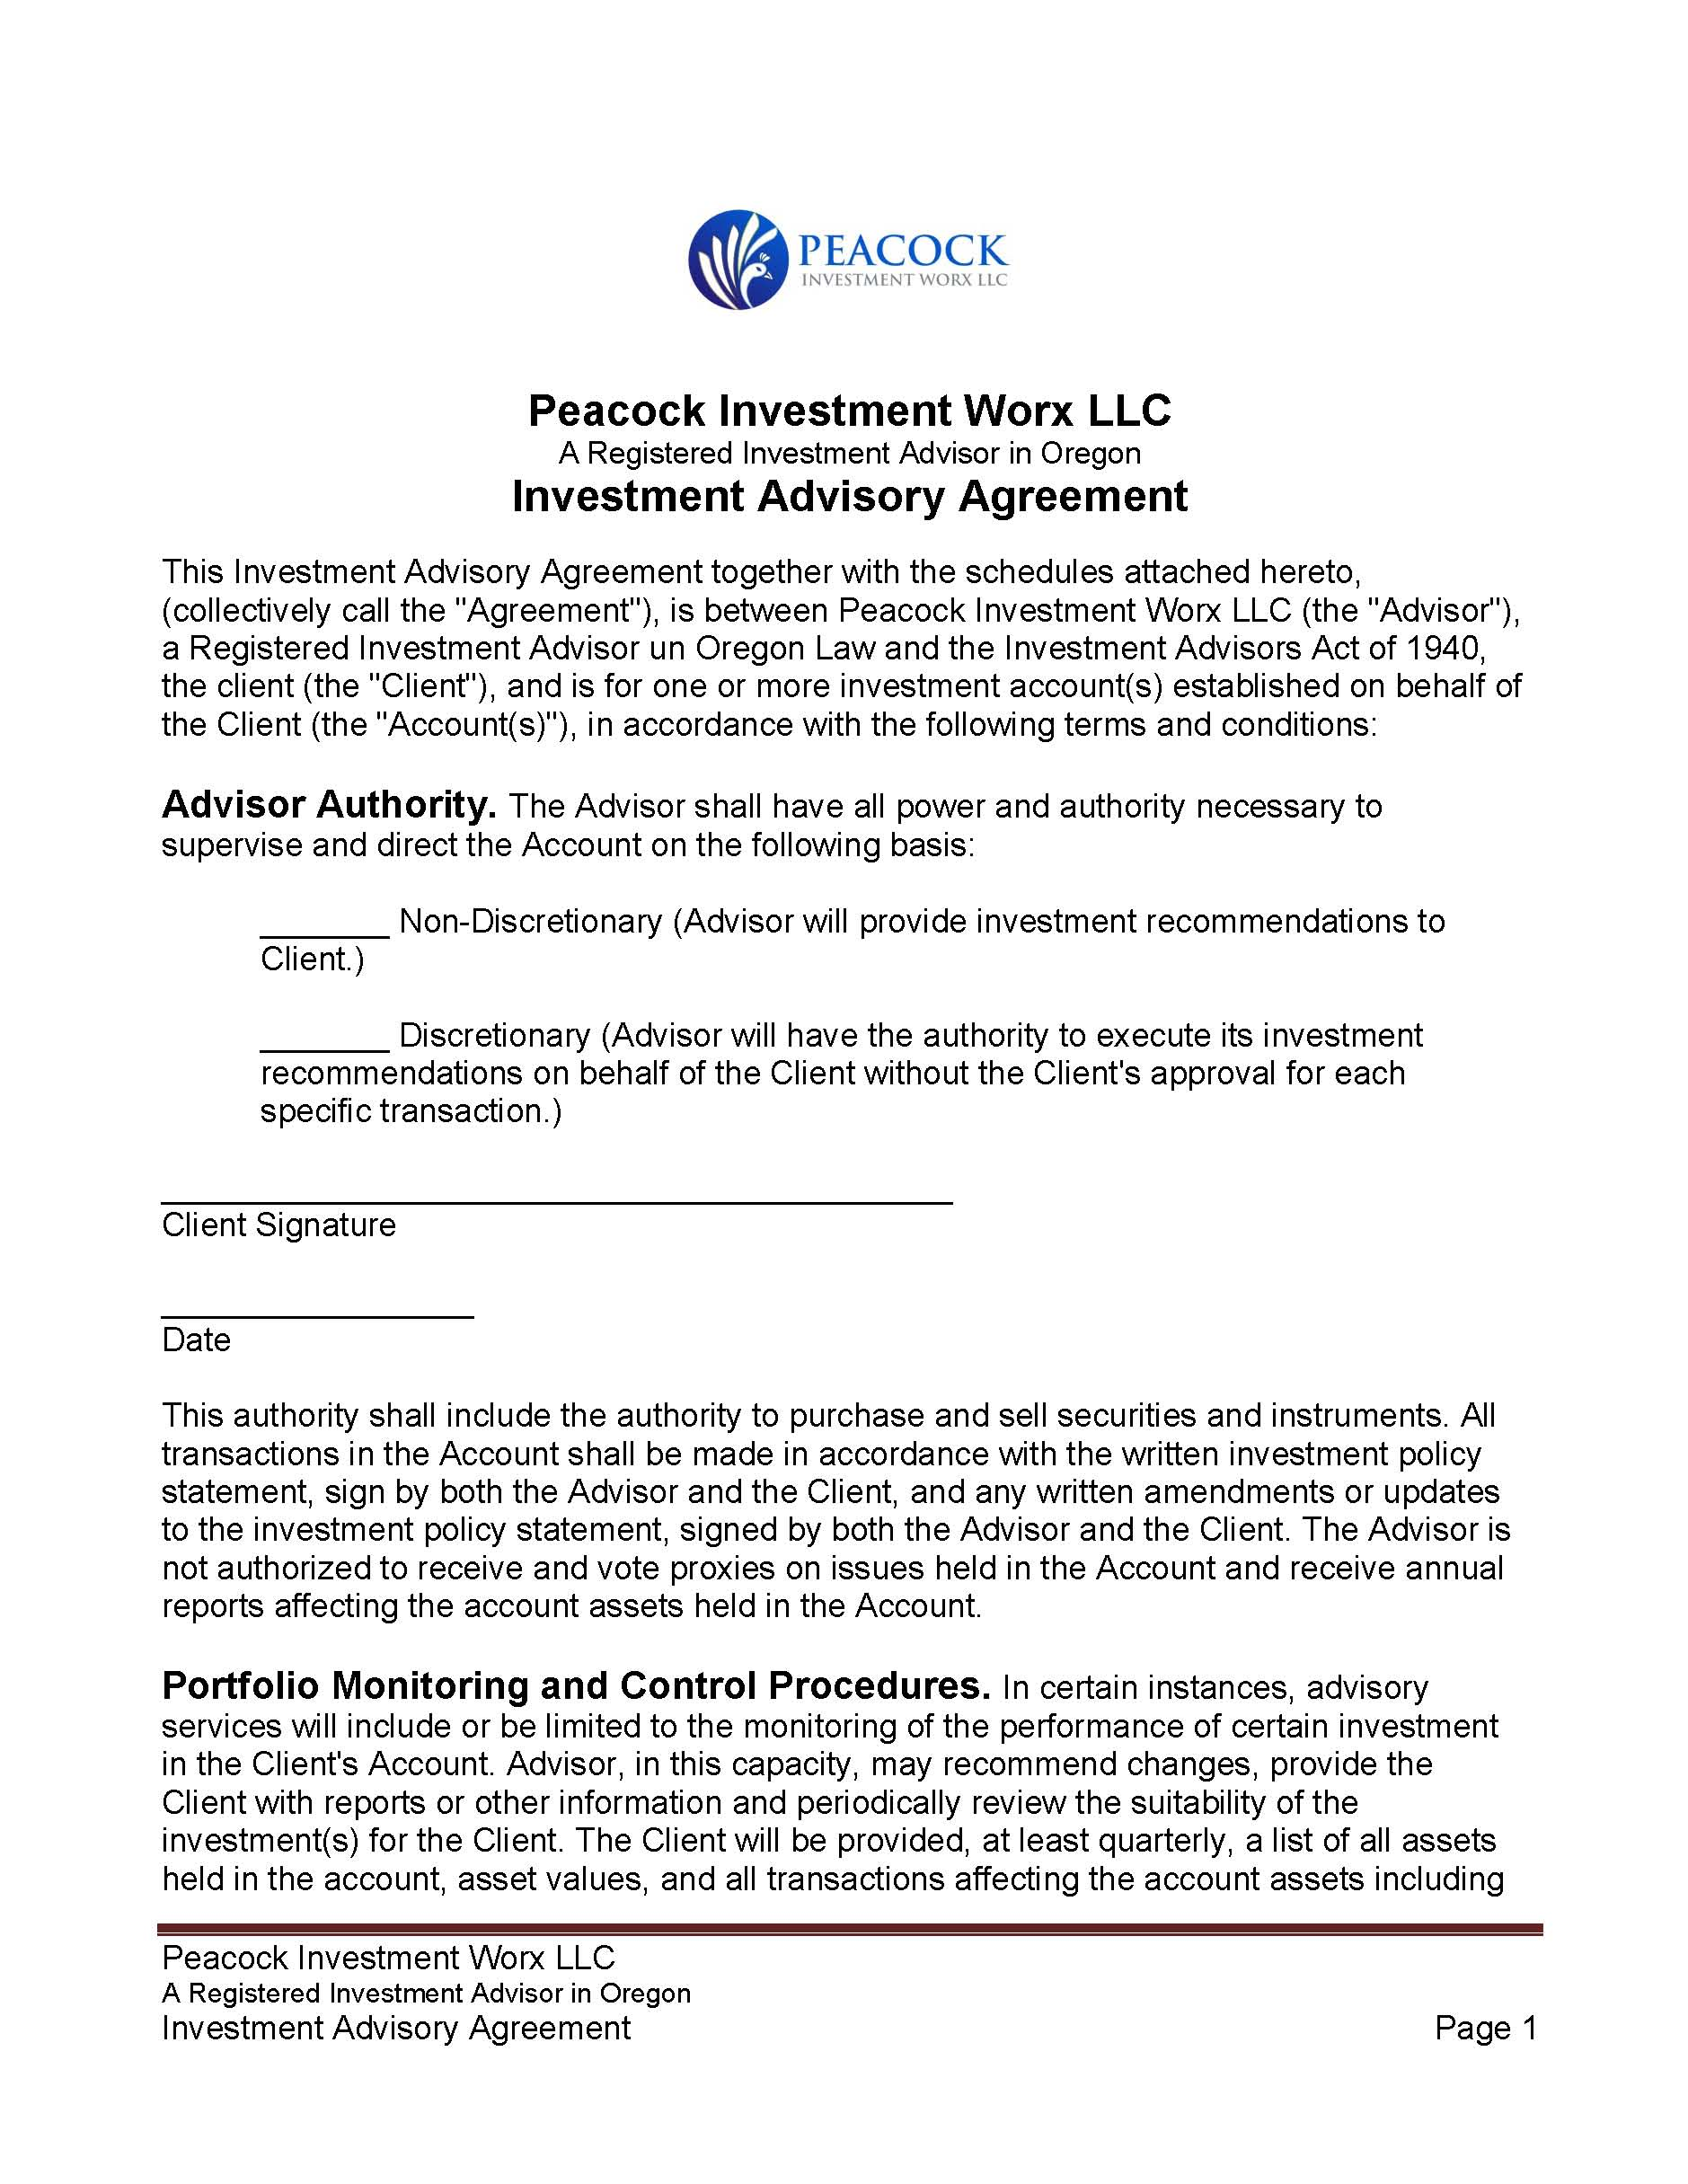 Piw General Investment Advisory Agreement With Tradepmr Fcc Verbiage